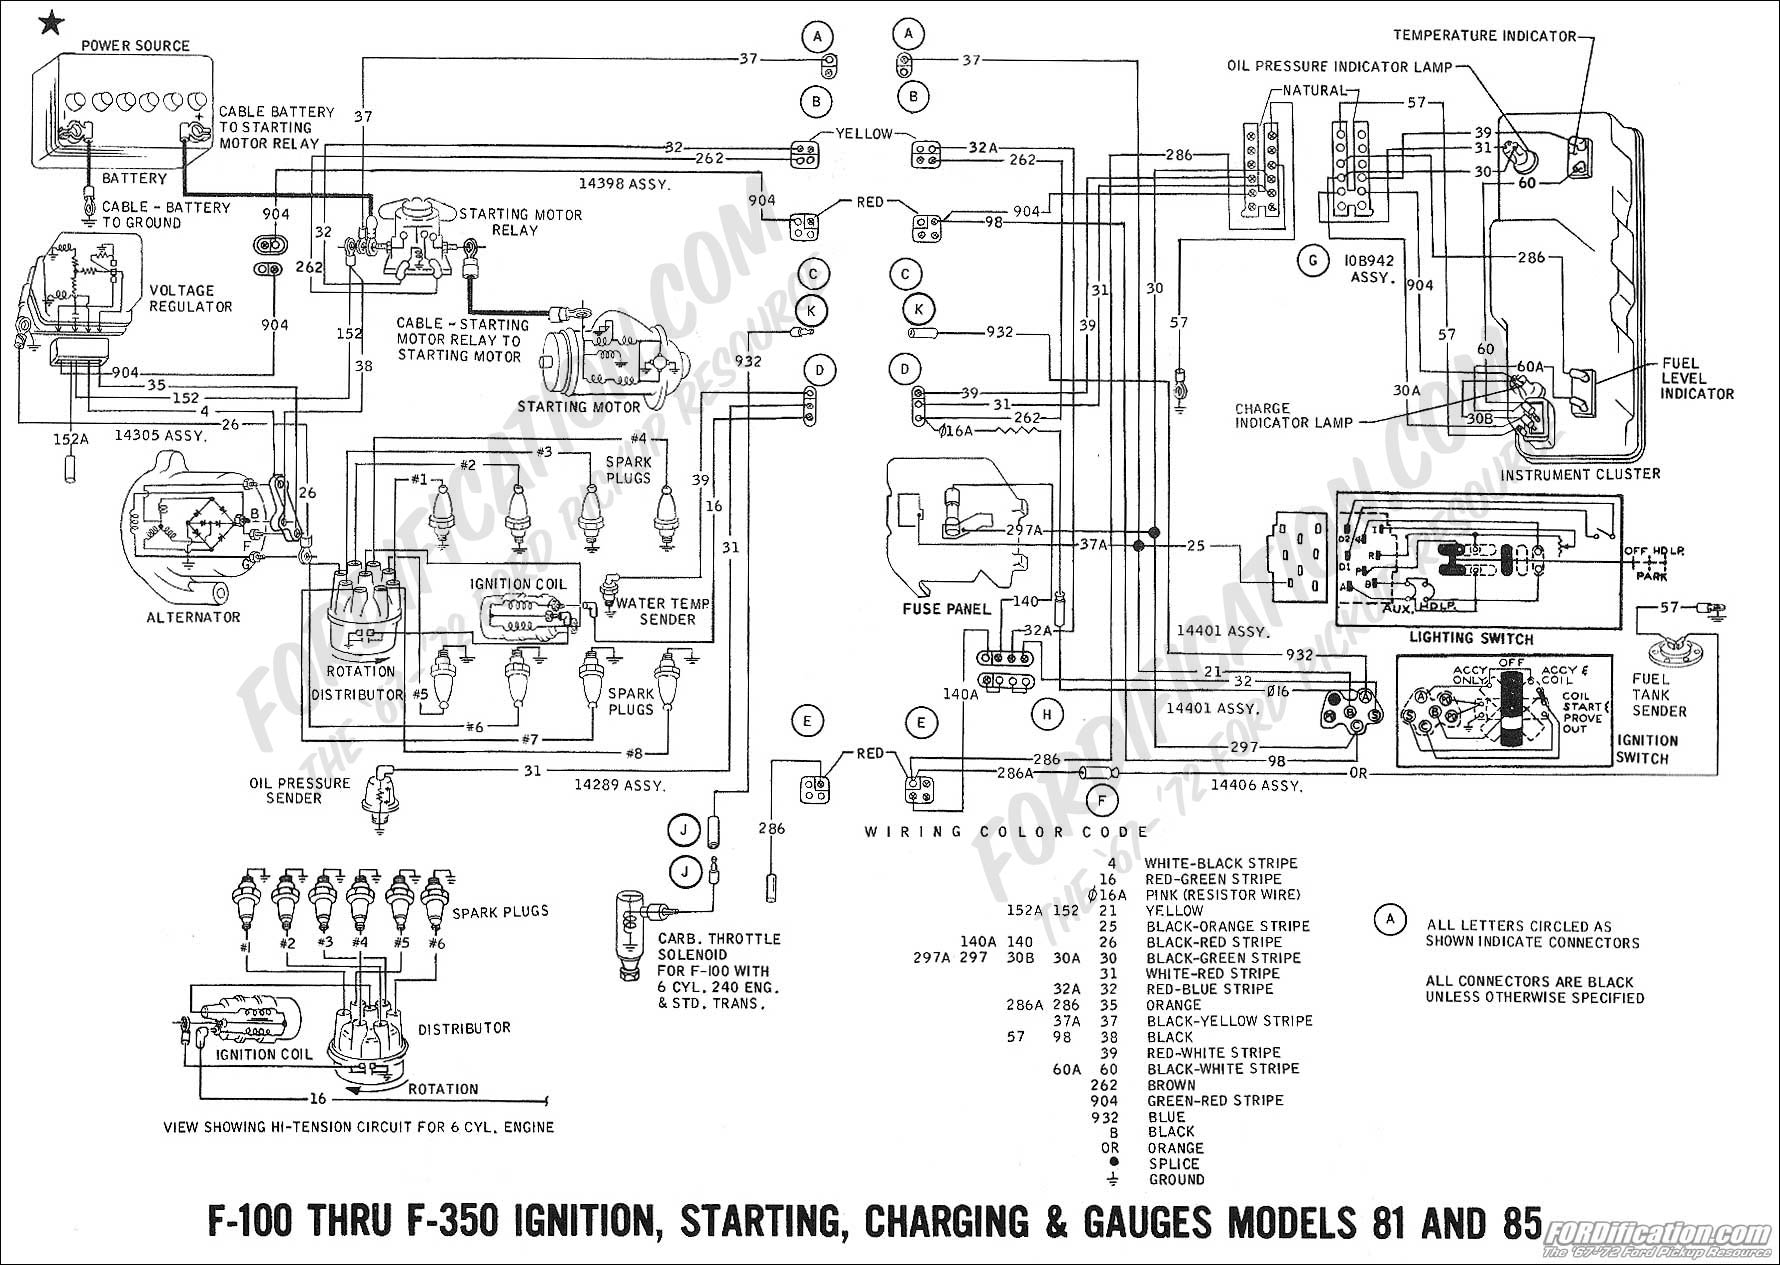 hight resolution of 1978 ford truck wiring harness wiring diagram todays 1969 dodge truck engine wiring harness digram